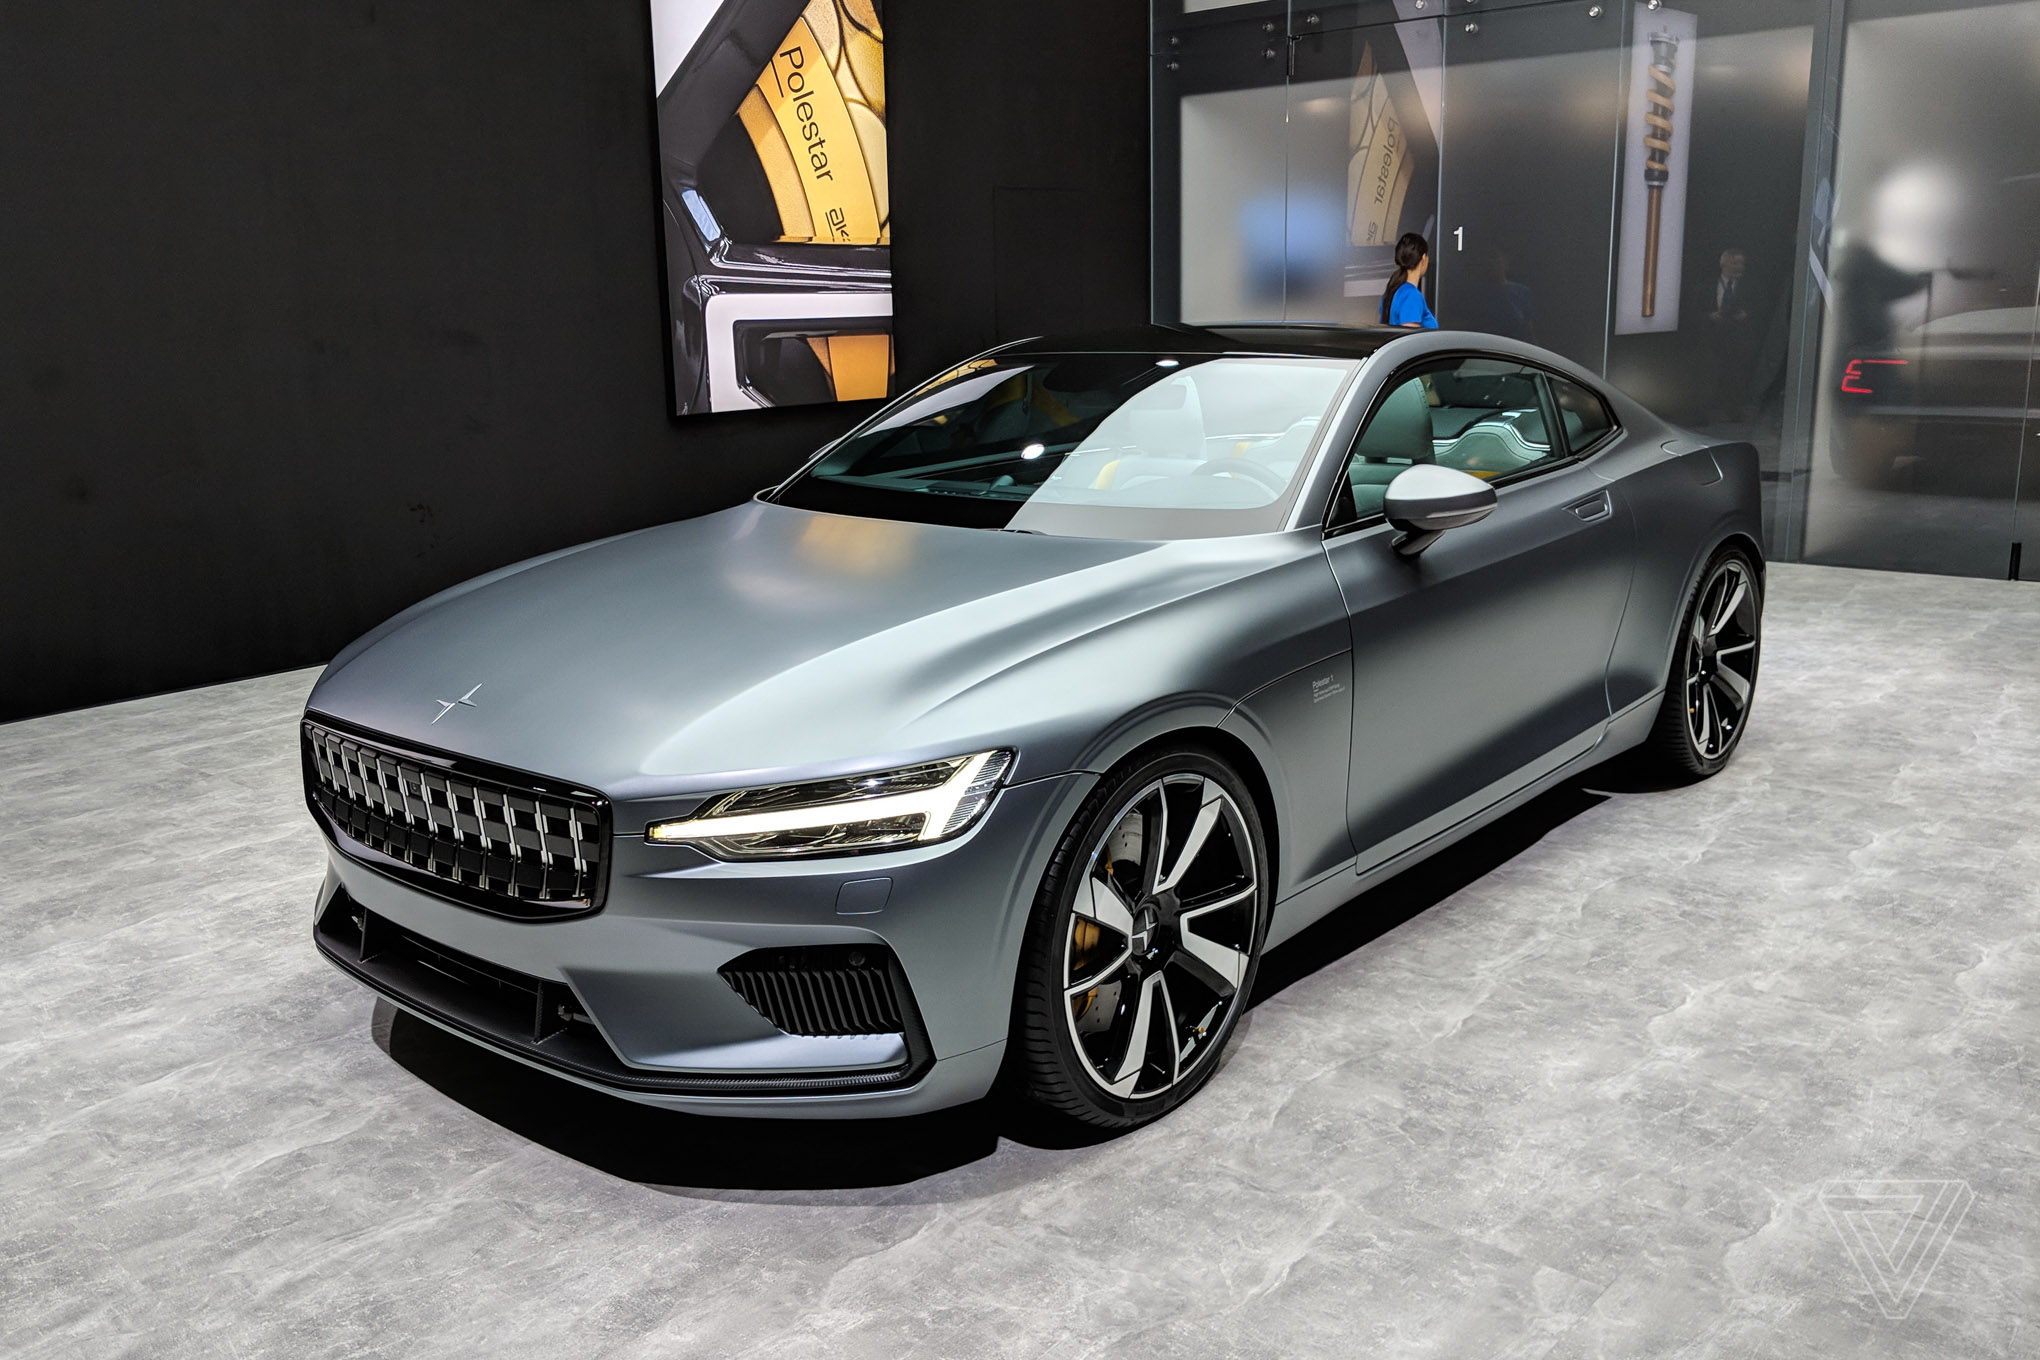 This is the Polestar 1, Volvo's new turbocharged electric coupe - The Verge